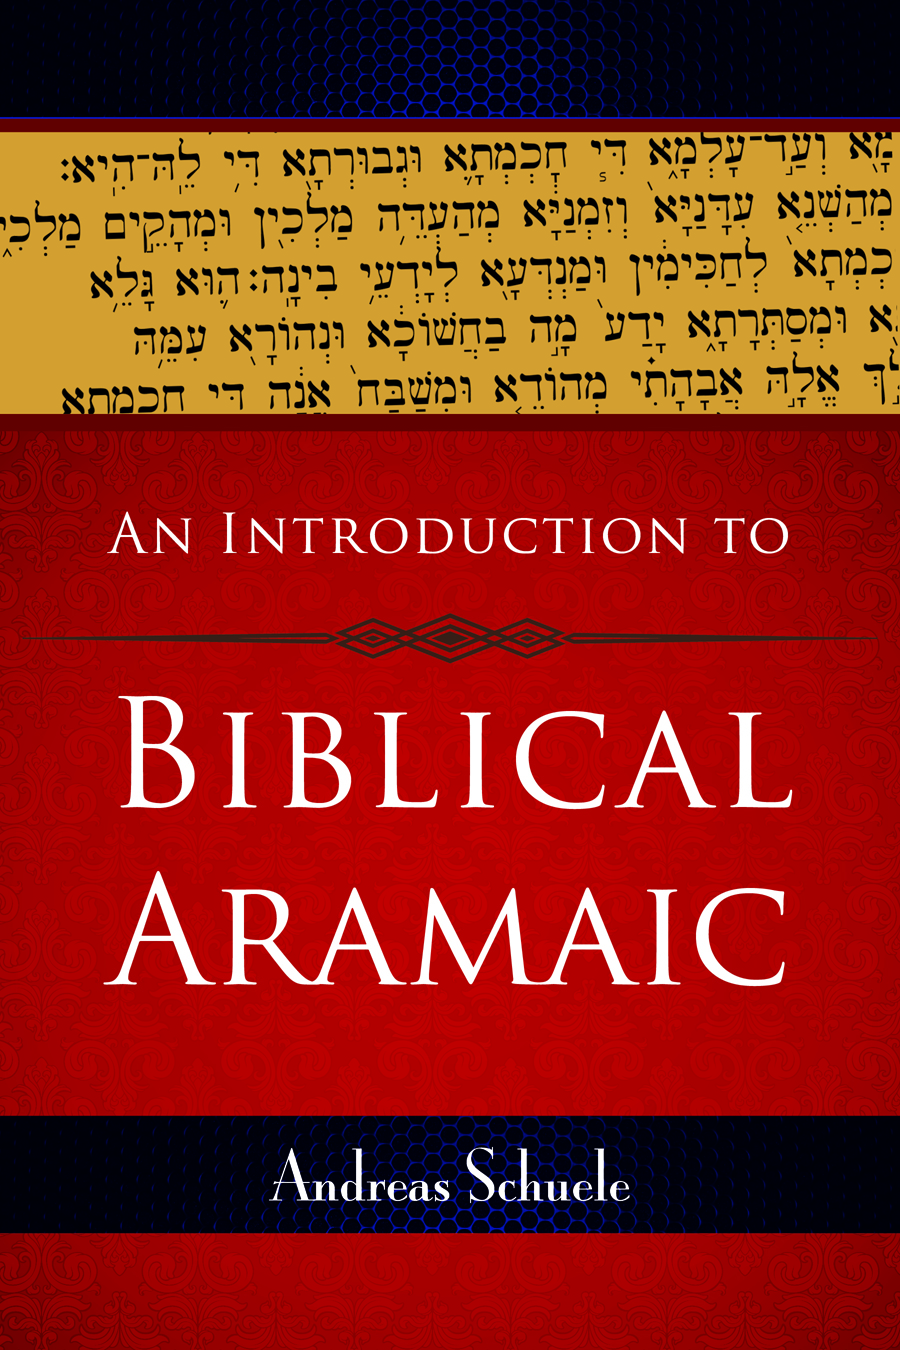 An Introduction to Biblical Aramaic